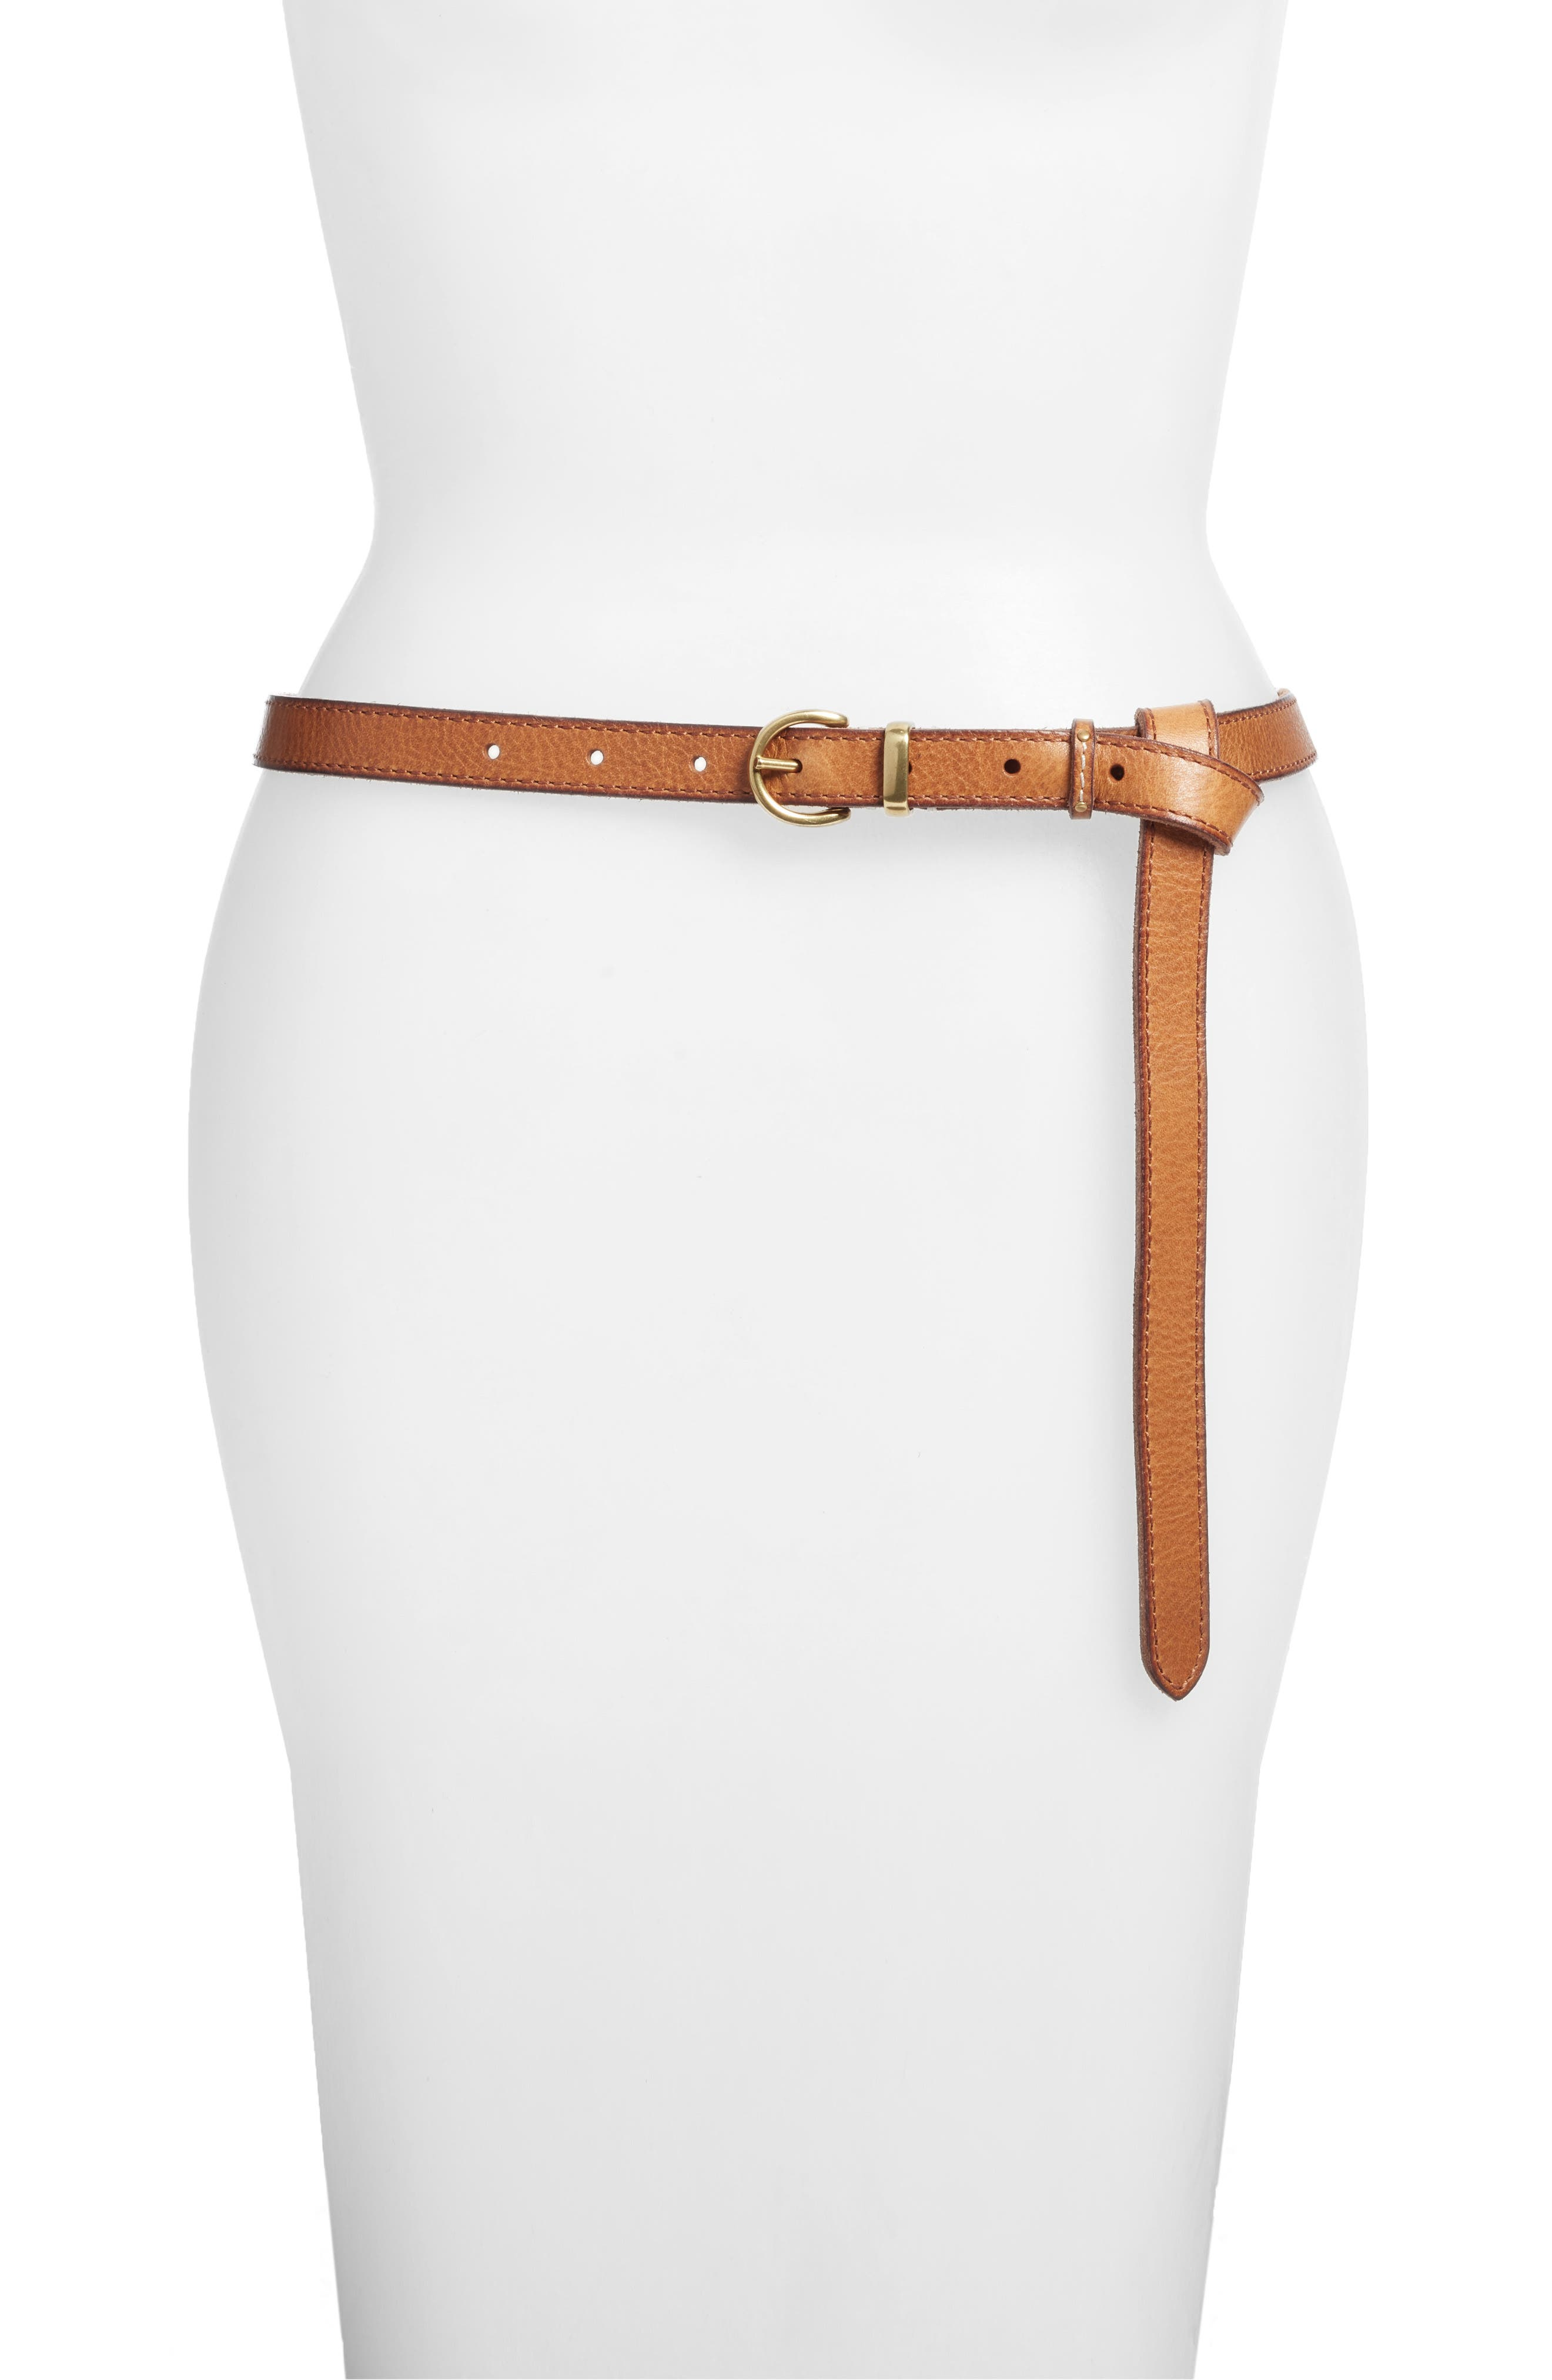 Campus Knotted Leather Belt, Tan